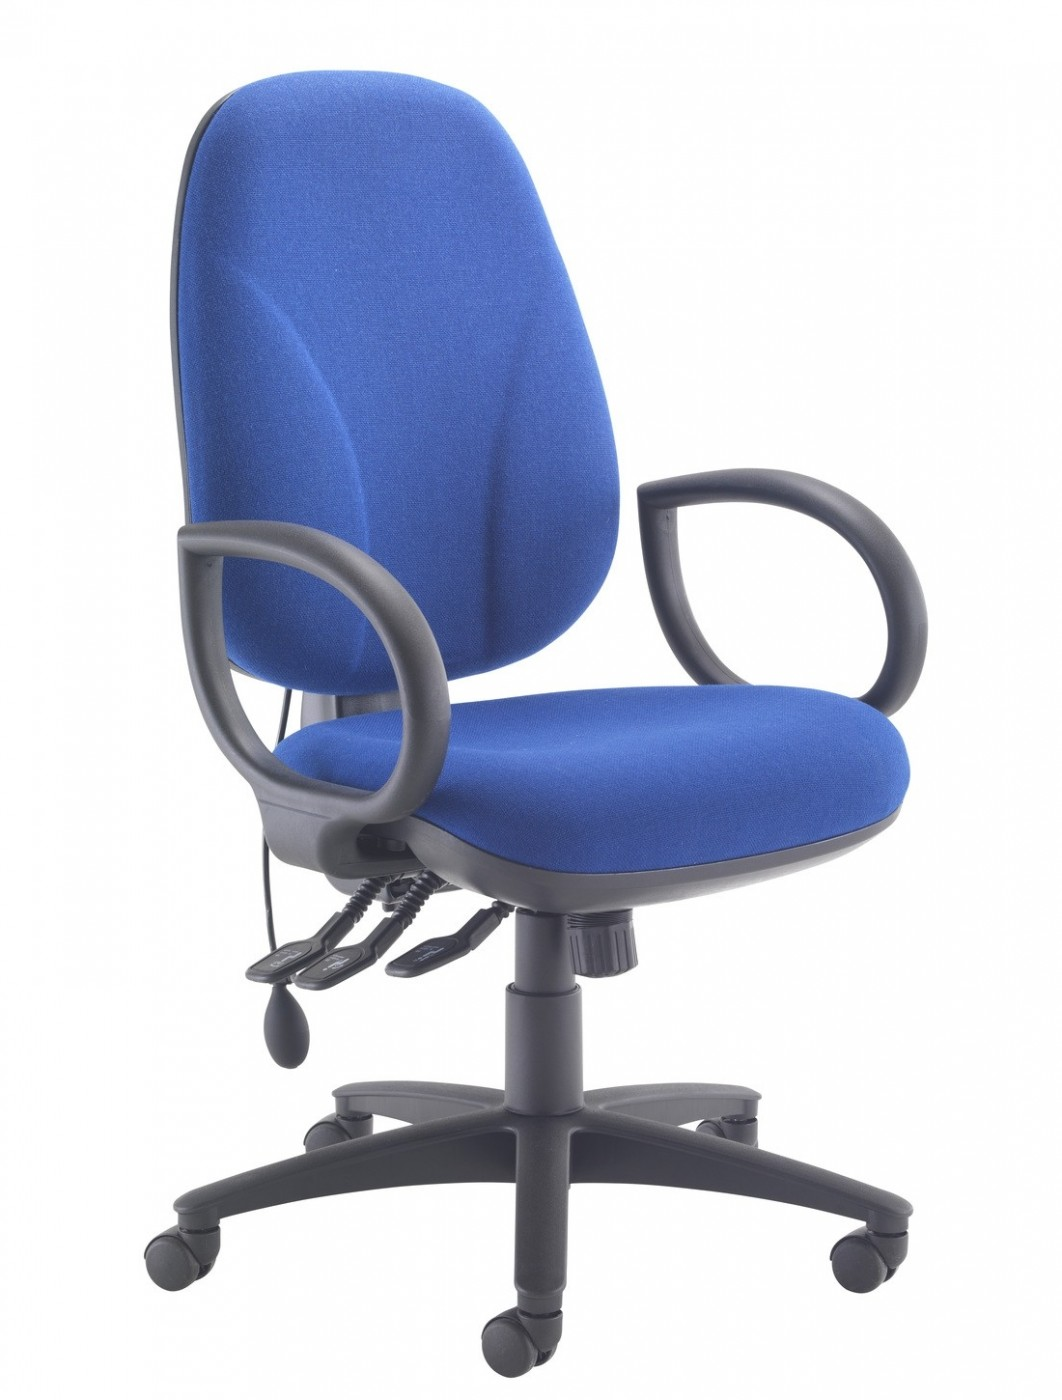 blue office chair boat chairs folding deck tc concept maxi ergo ch0808 in